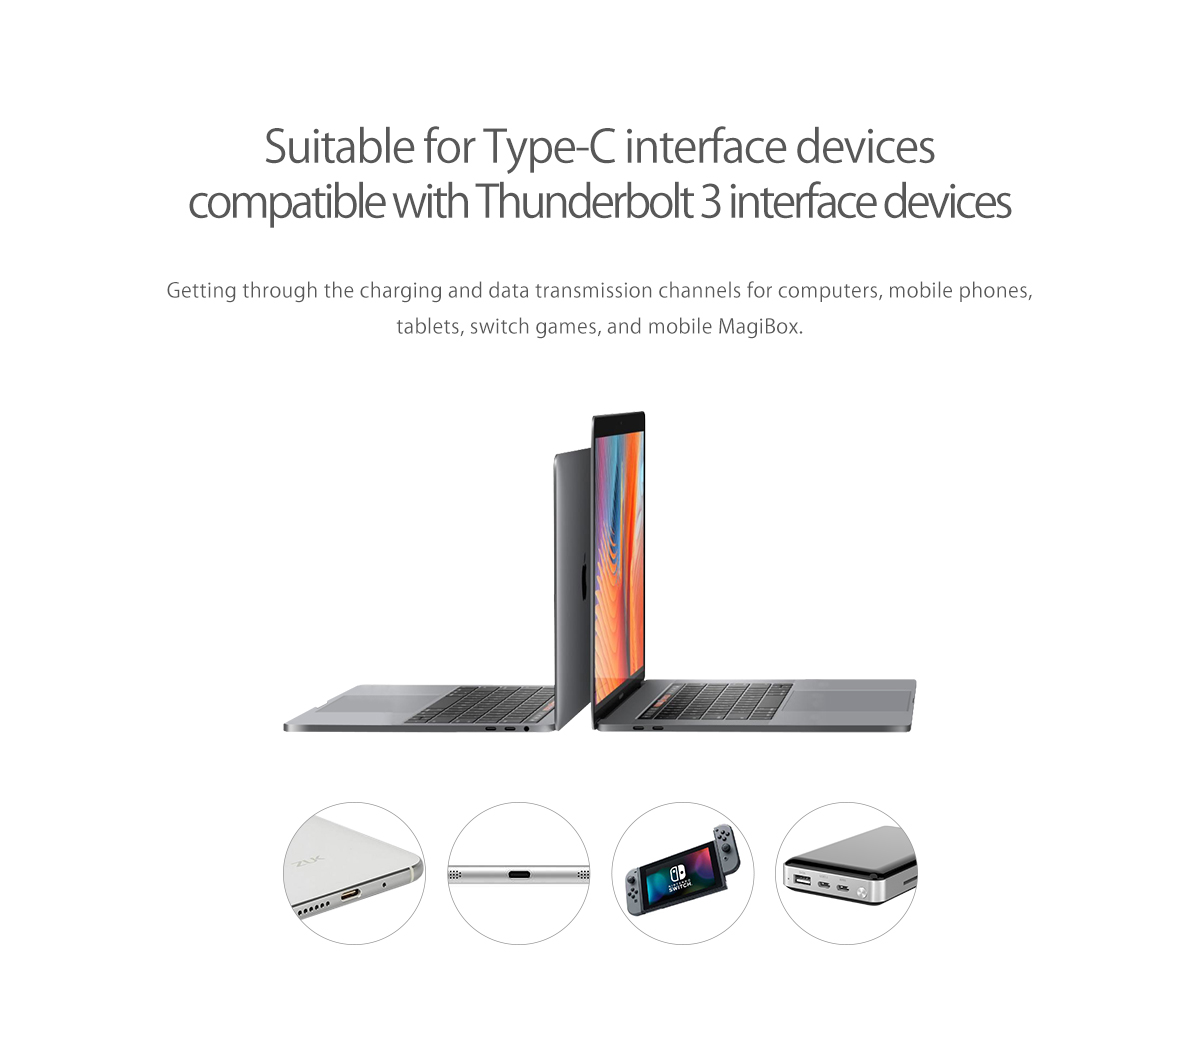 compatible with Thunderbolt3 and Type-C interface devices